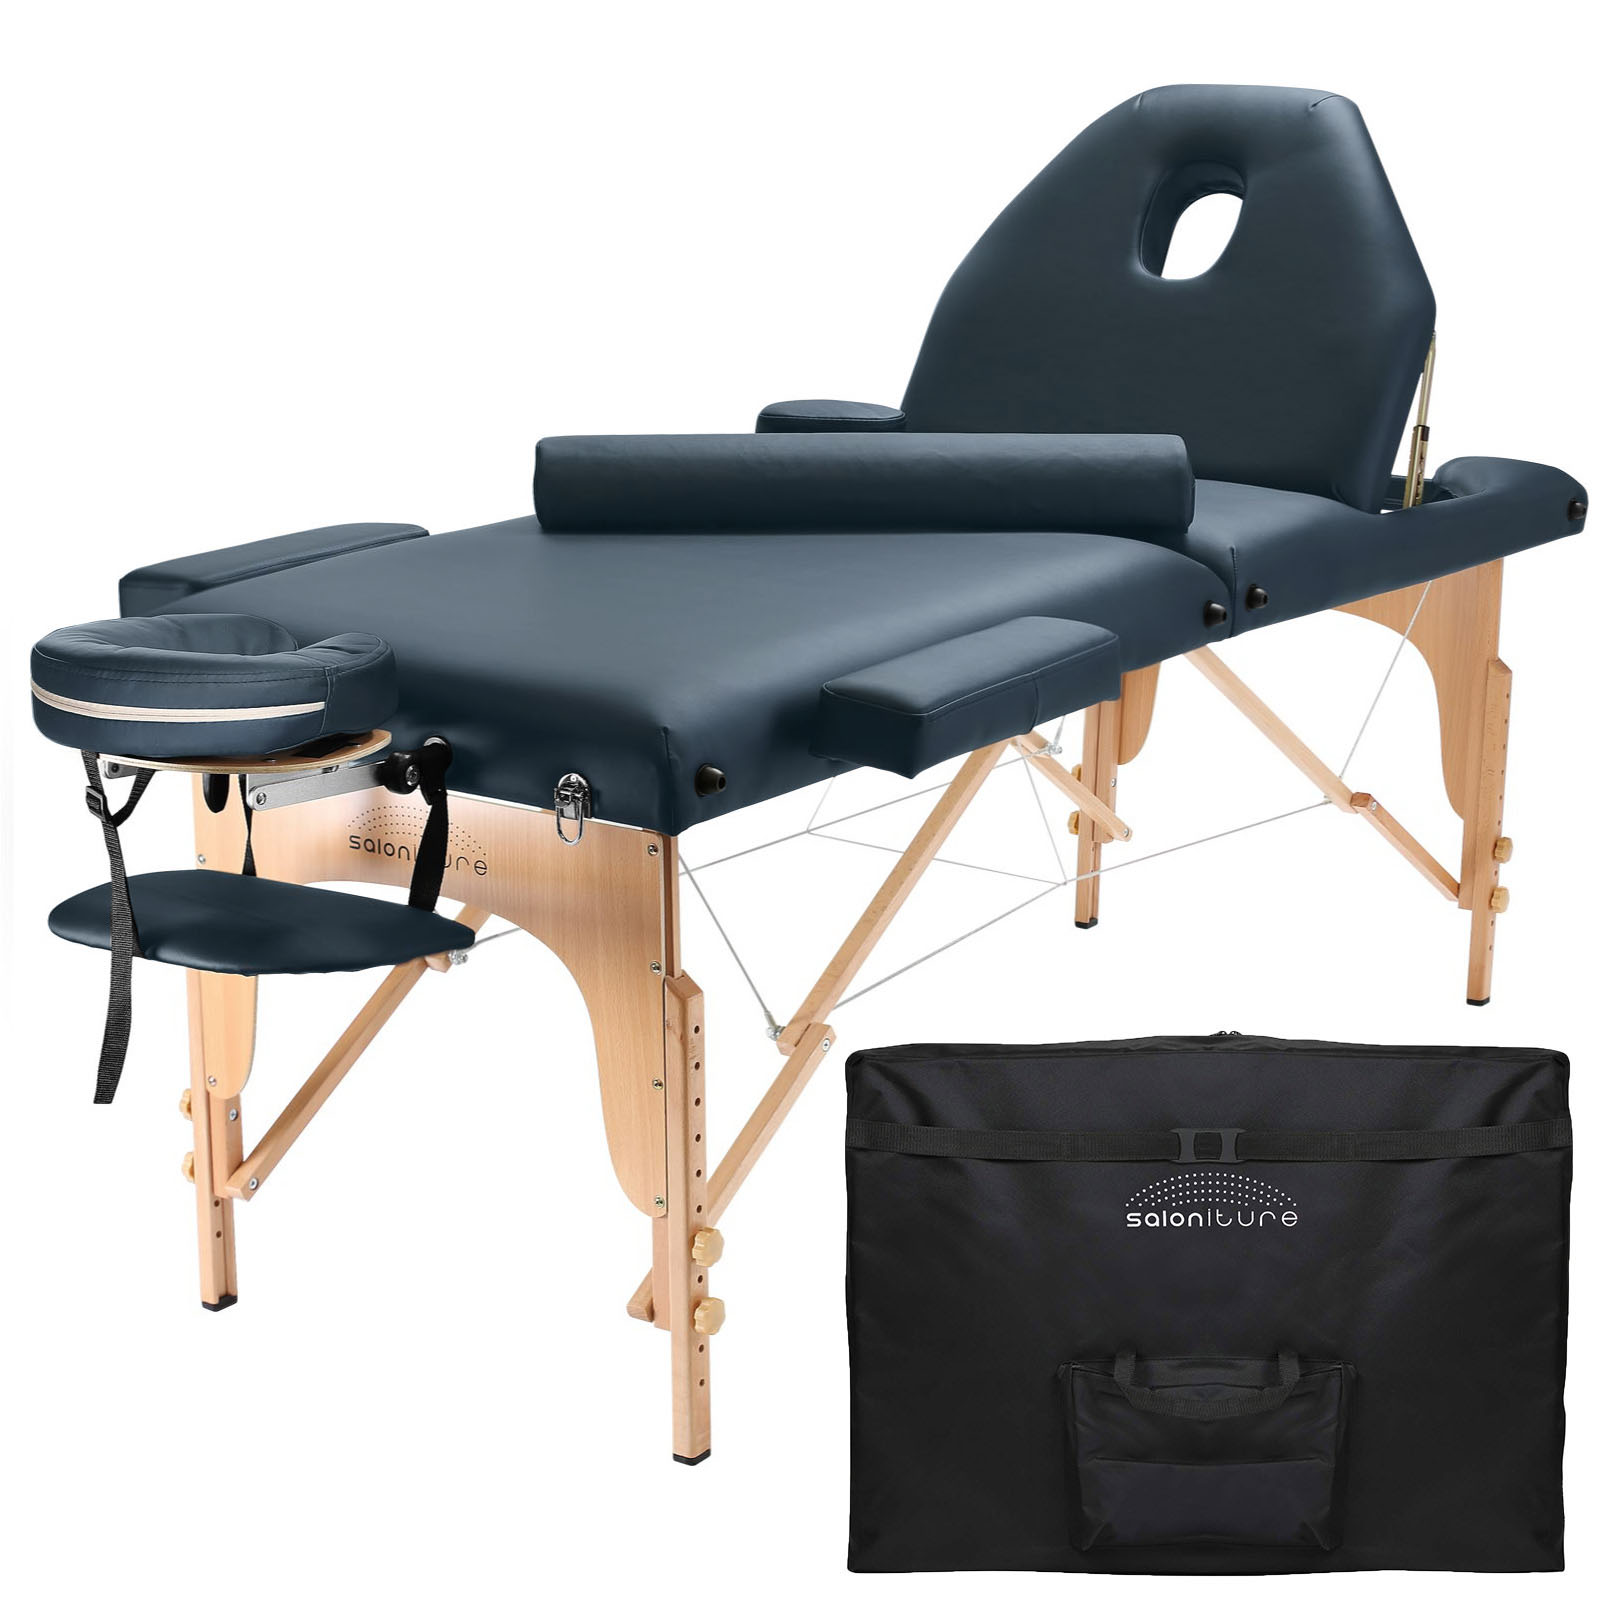 Professional Portable Massage Table with Backrest - Blue